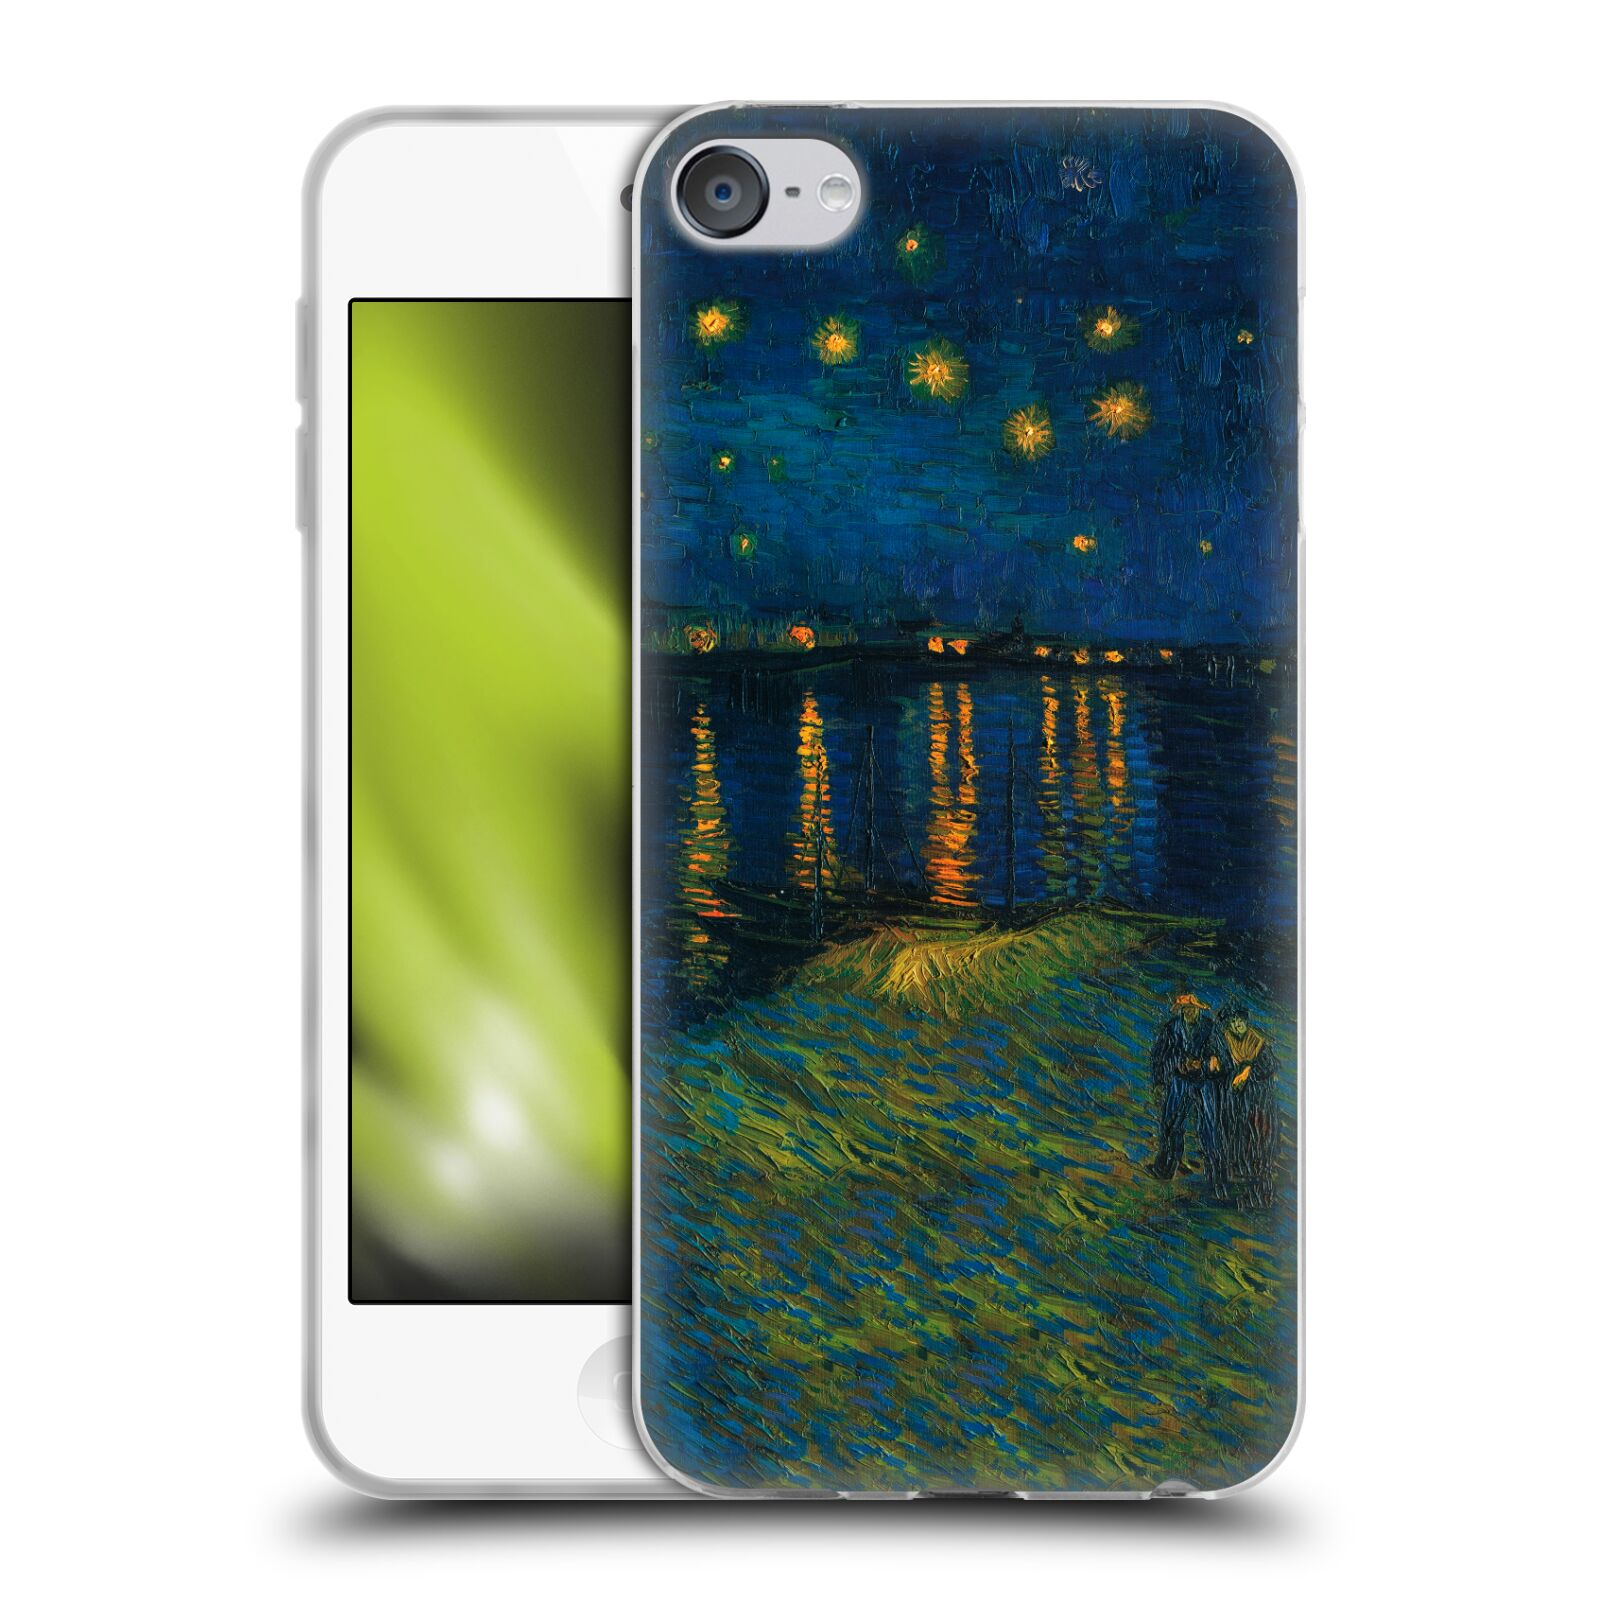 OFFICIAL-MASTERS-COLLECTION-PAINTINGS-2-SOFT-GEL-CASE-FOR-APPLE-iPOD-TOUCH-MP3